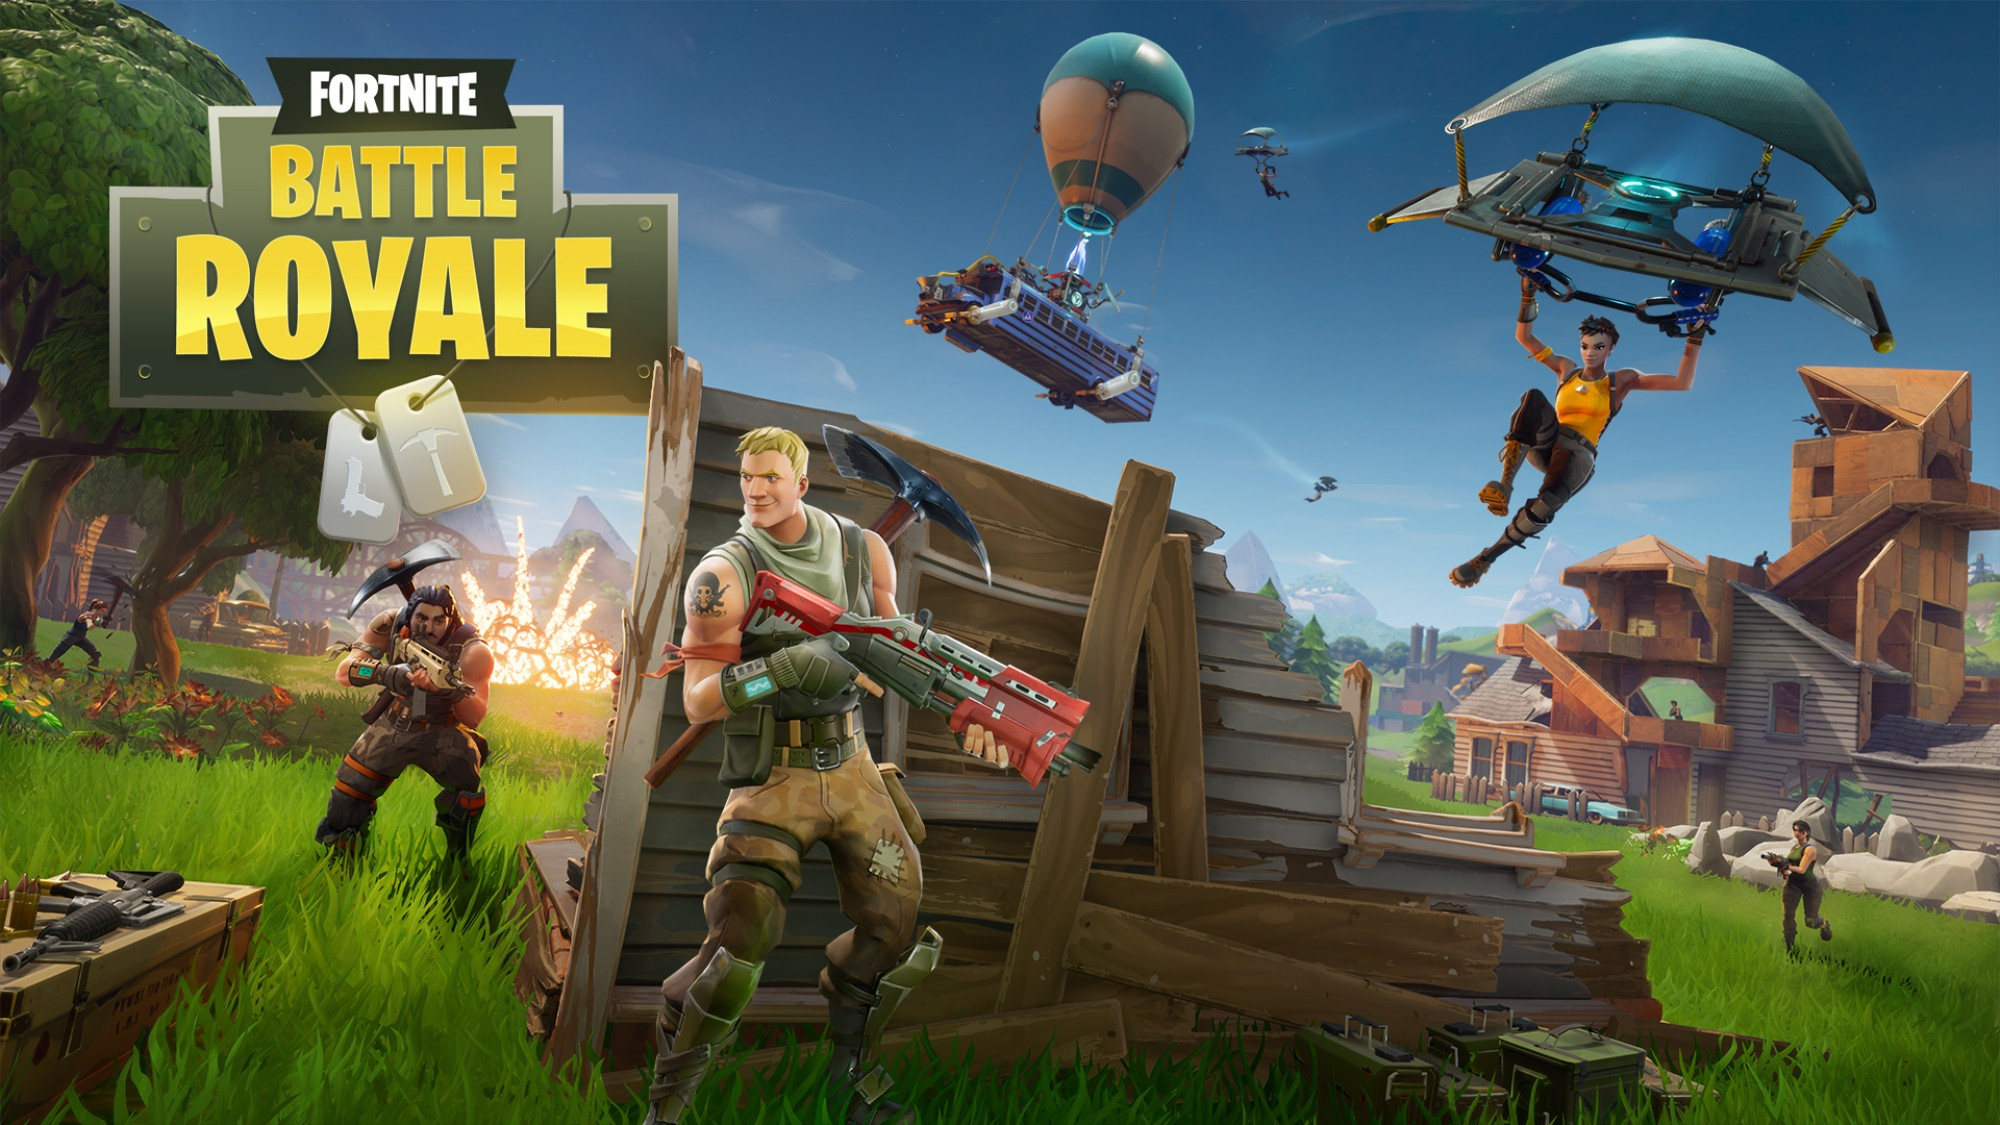 New 'Fortnite' Battle Royale Mode Misses What Makes the Game Great